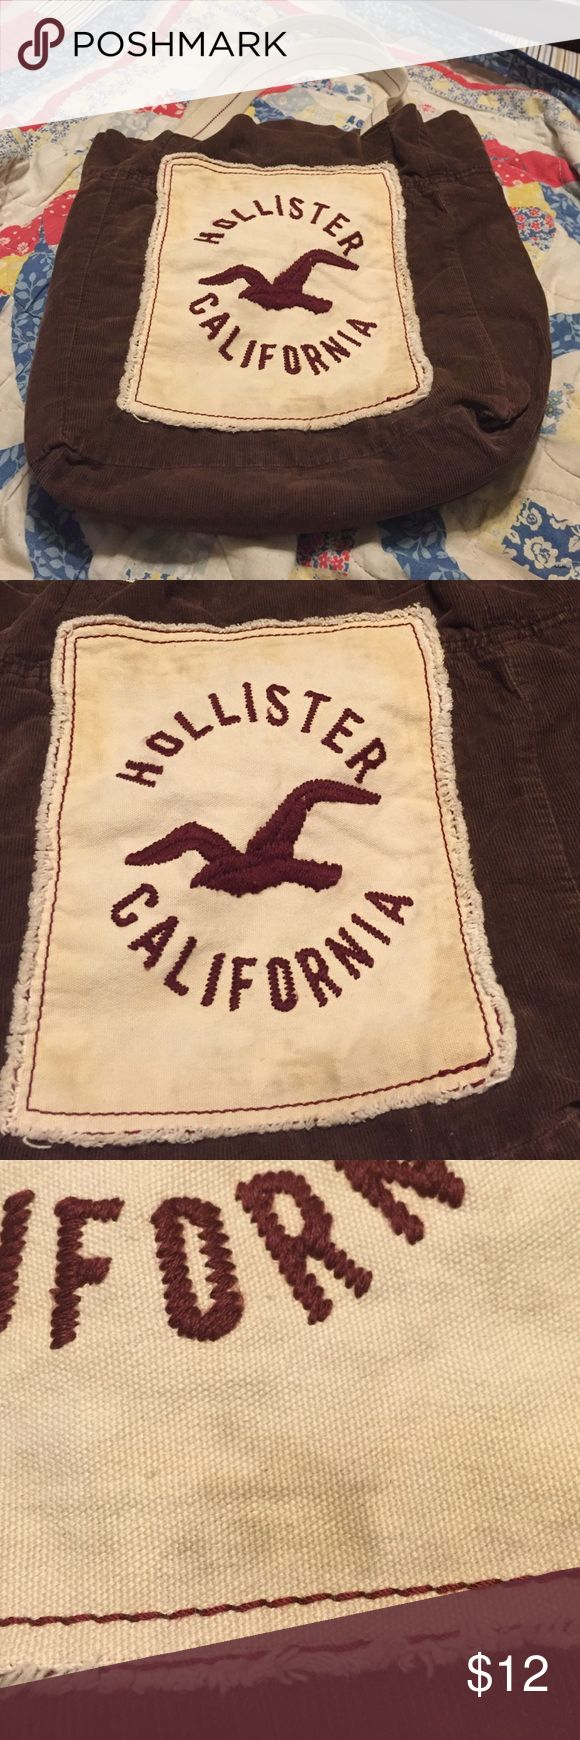 Hollister bag Brown corduroy Hollister bag. Does have one stain on it, can be seen in the third picture. Hollister Bags Shoulder Bags